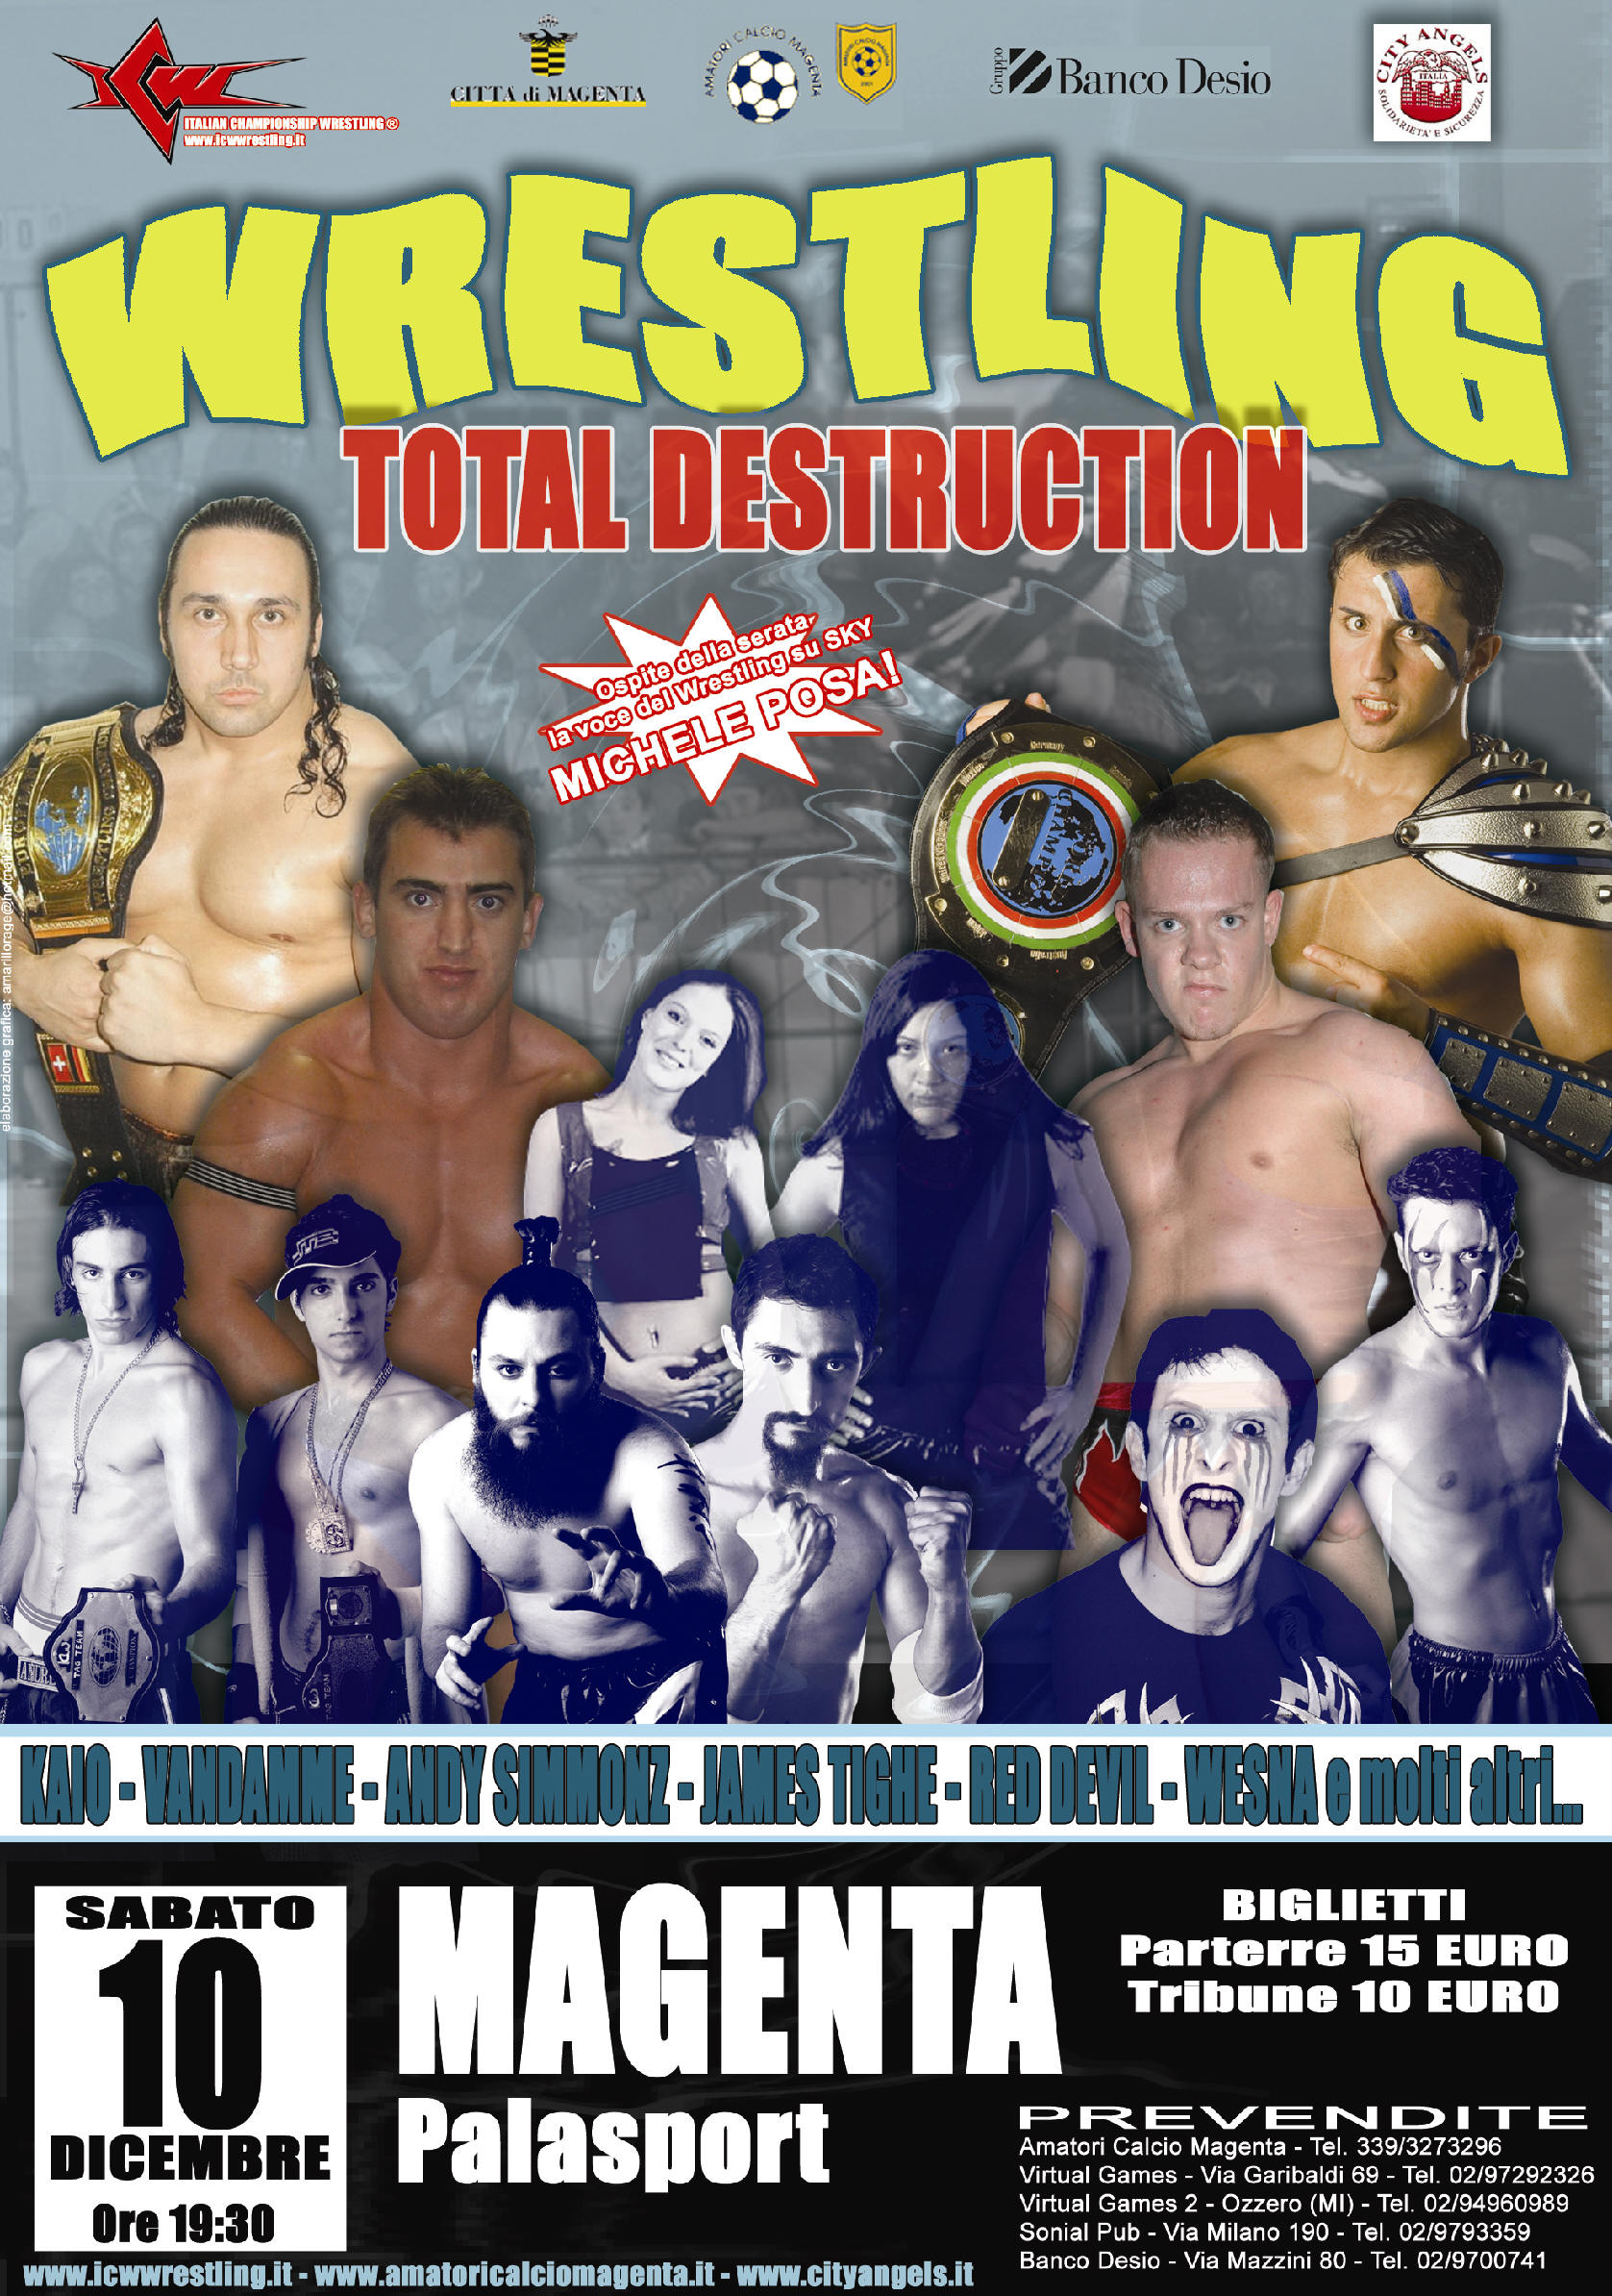 ICW Total Destruction 2005